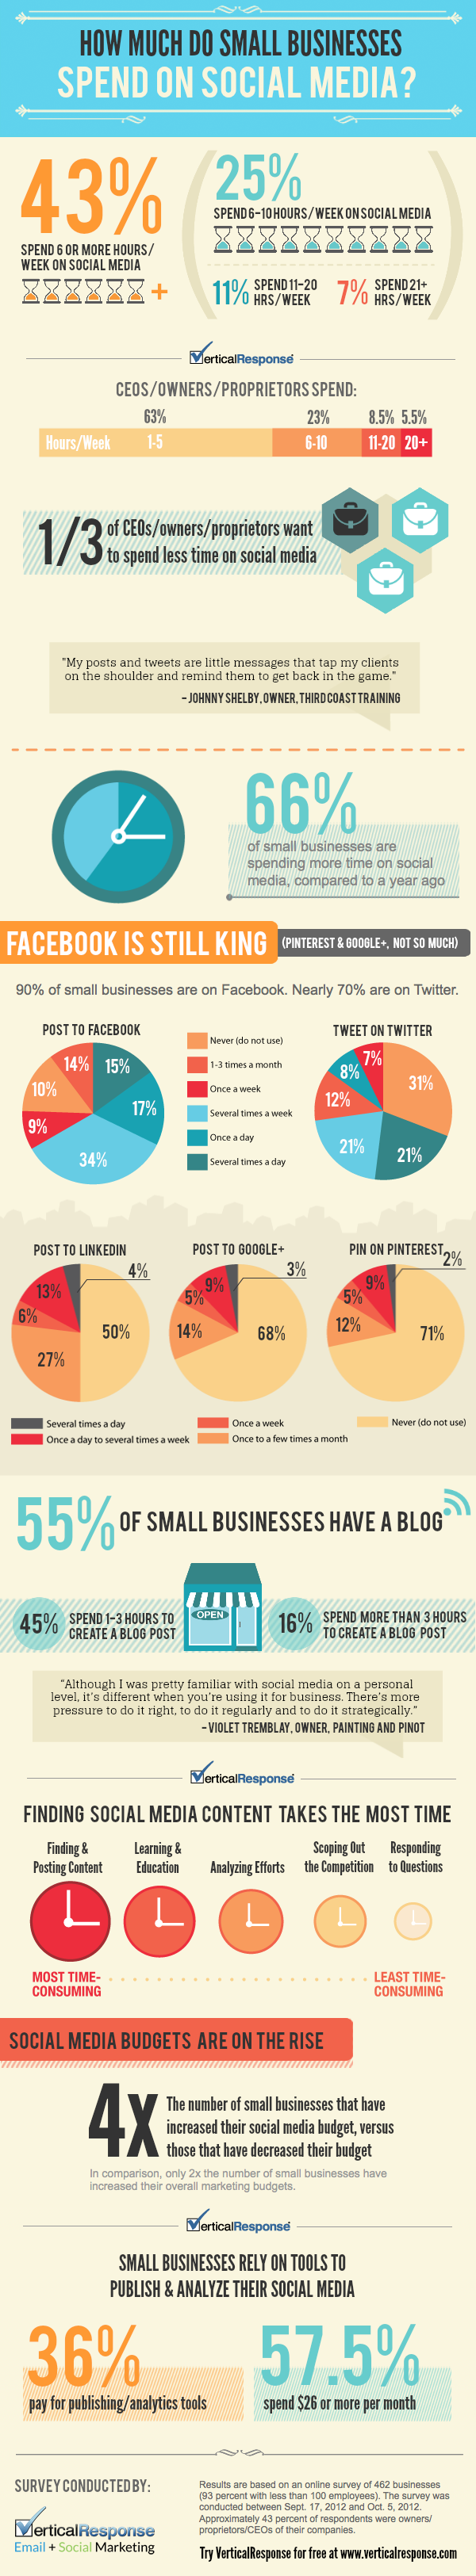 SMEs (Small medium Enterprises) - how much budget do they spend on social media?